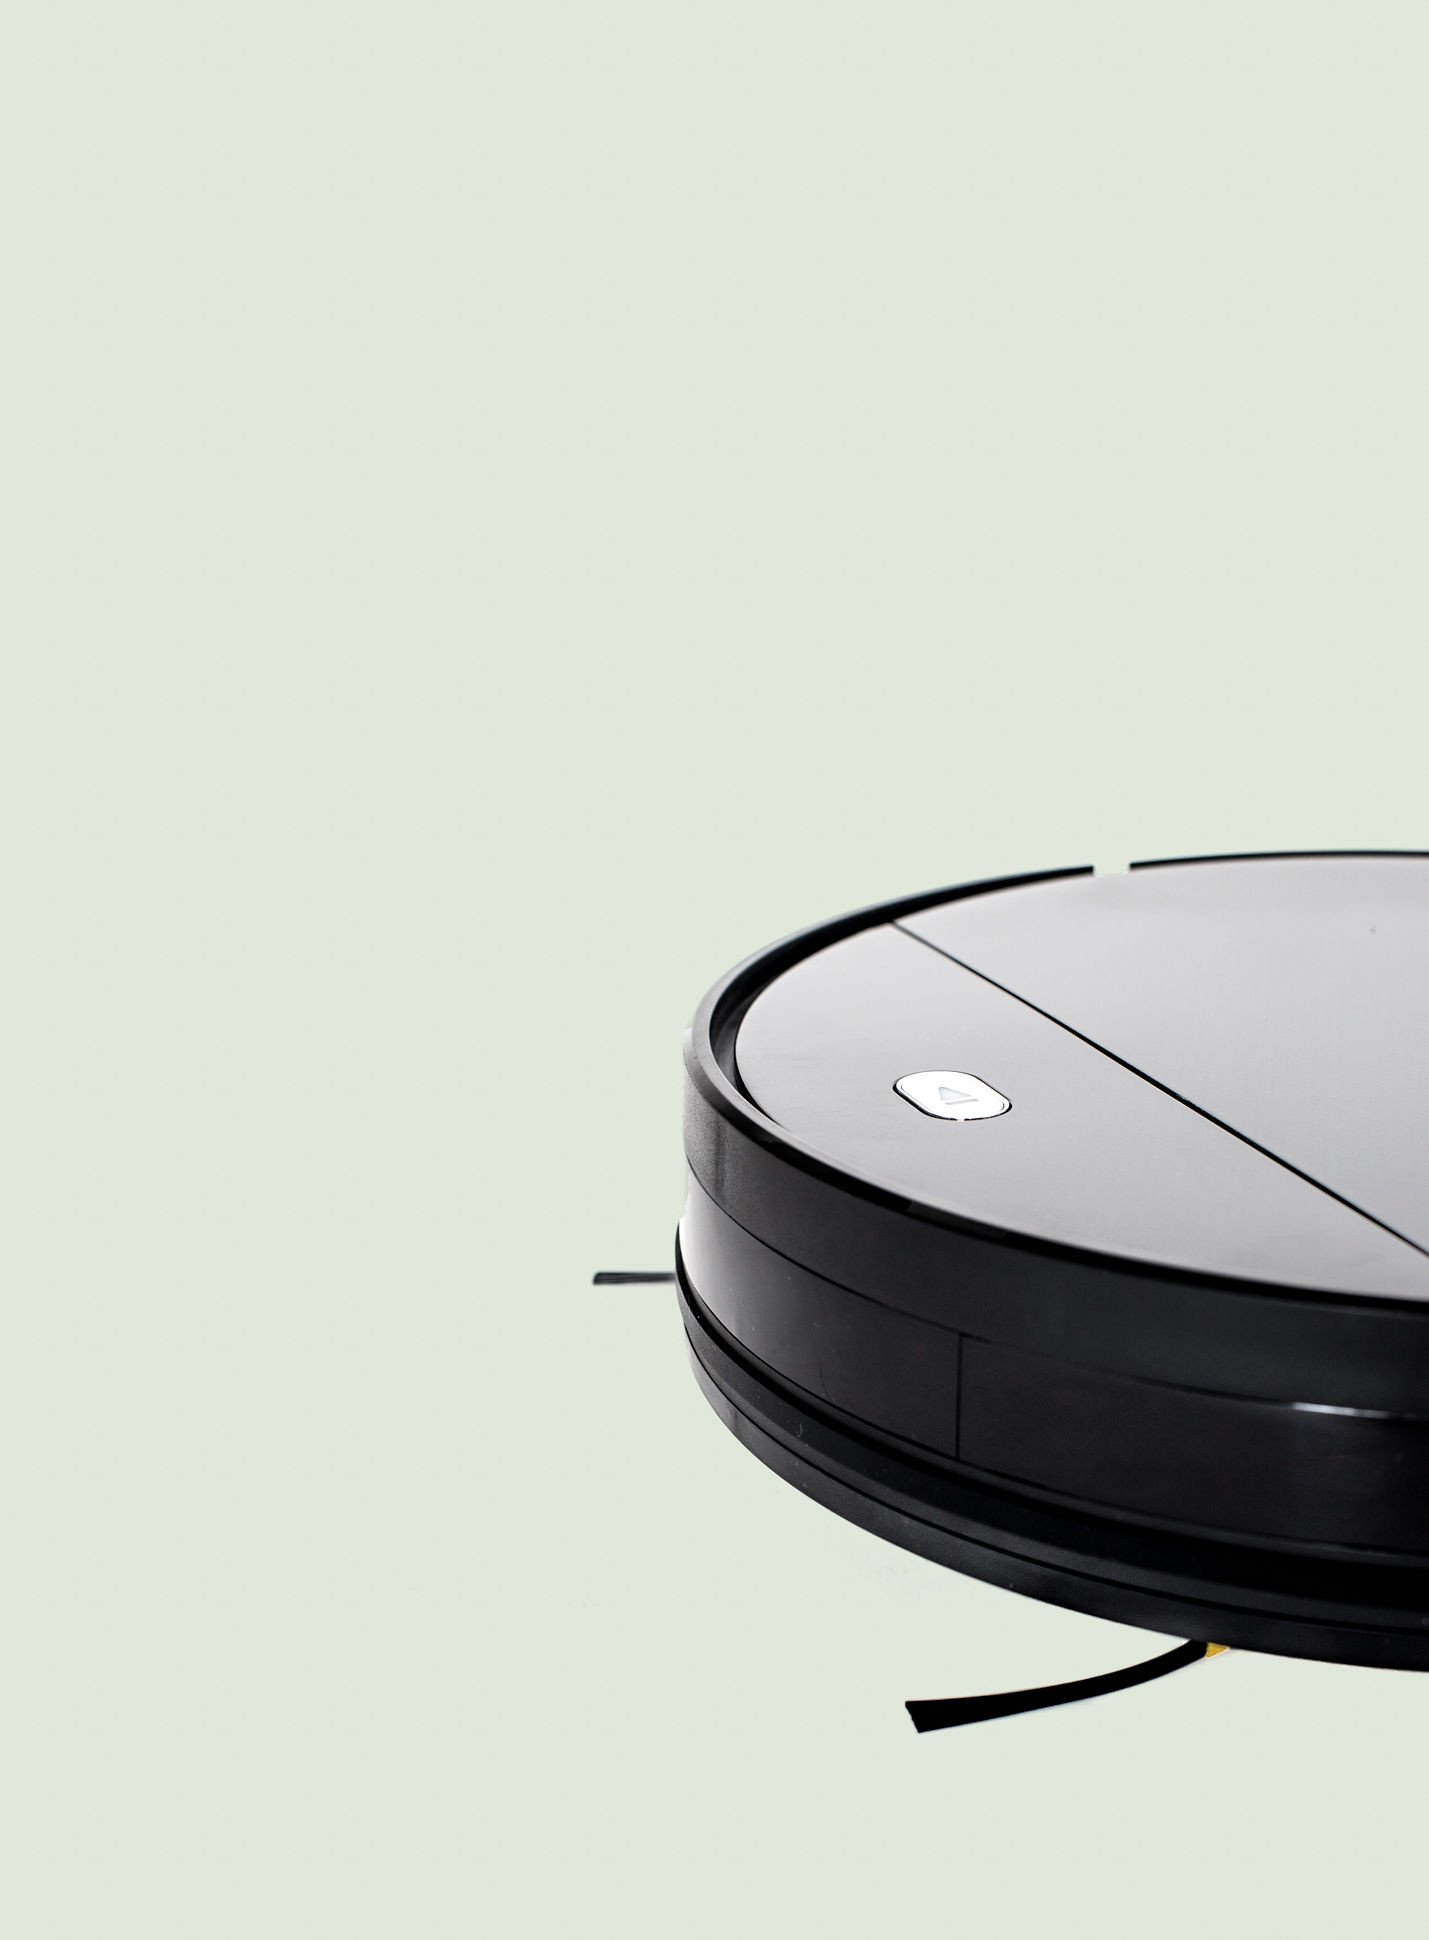 IKOHS NETBOT S12 Robot Smart Vacuum Cleaner Black Vacuum Cleaner Professional Home Mnando Remote Wireless Intelligent - 5